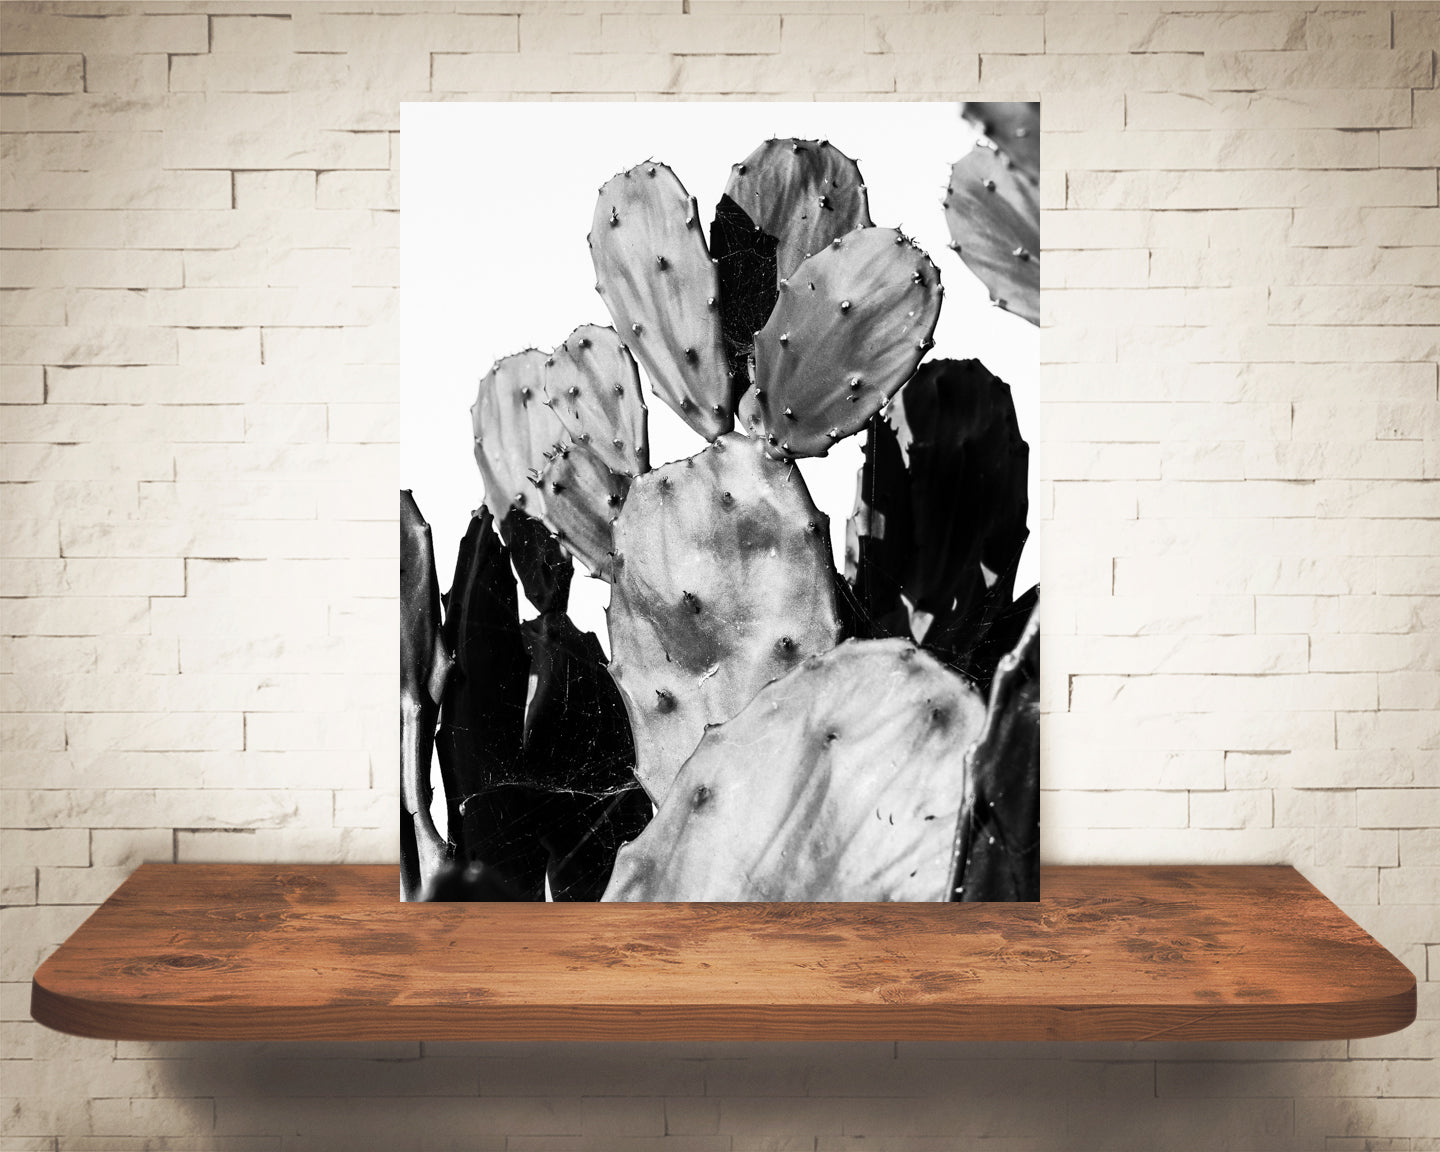 Prickly Pear Cactus Photograph Black White